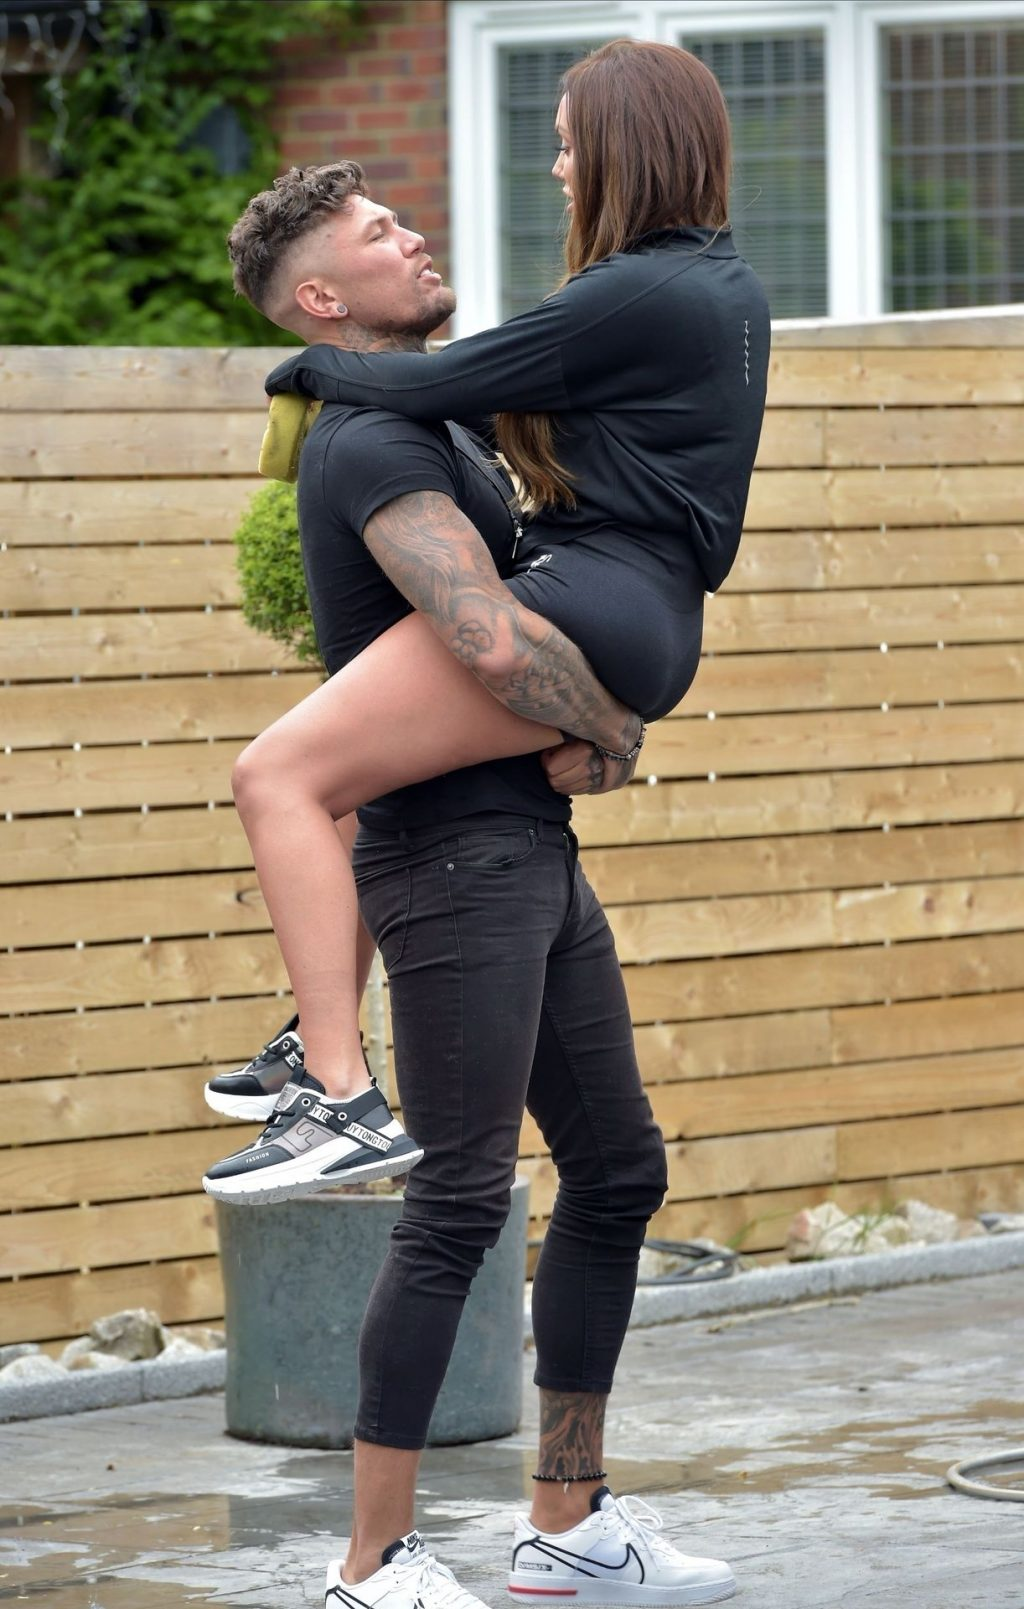 Charlotte Crosby is Pictured with Her New Boyfriend Liam Beaumont for the First Time (57 Photos)